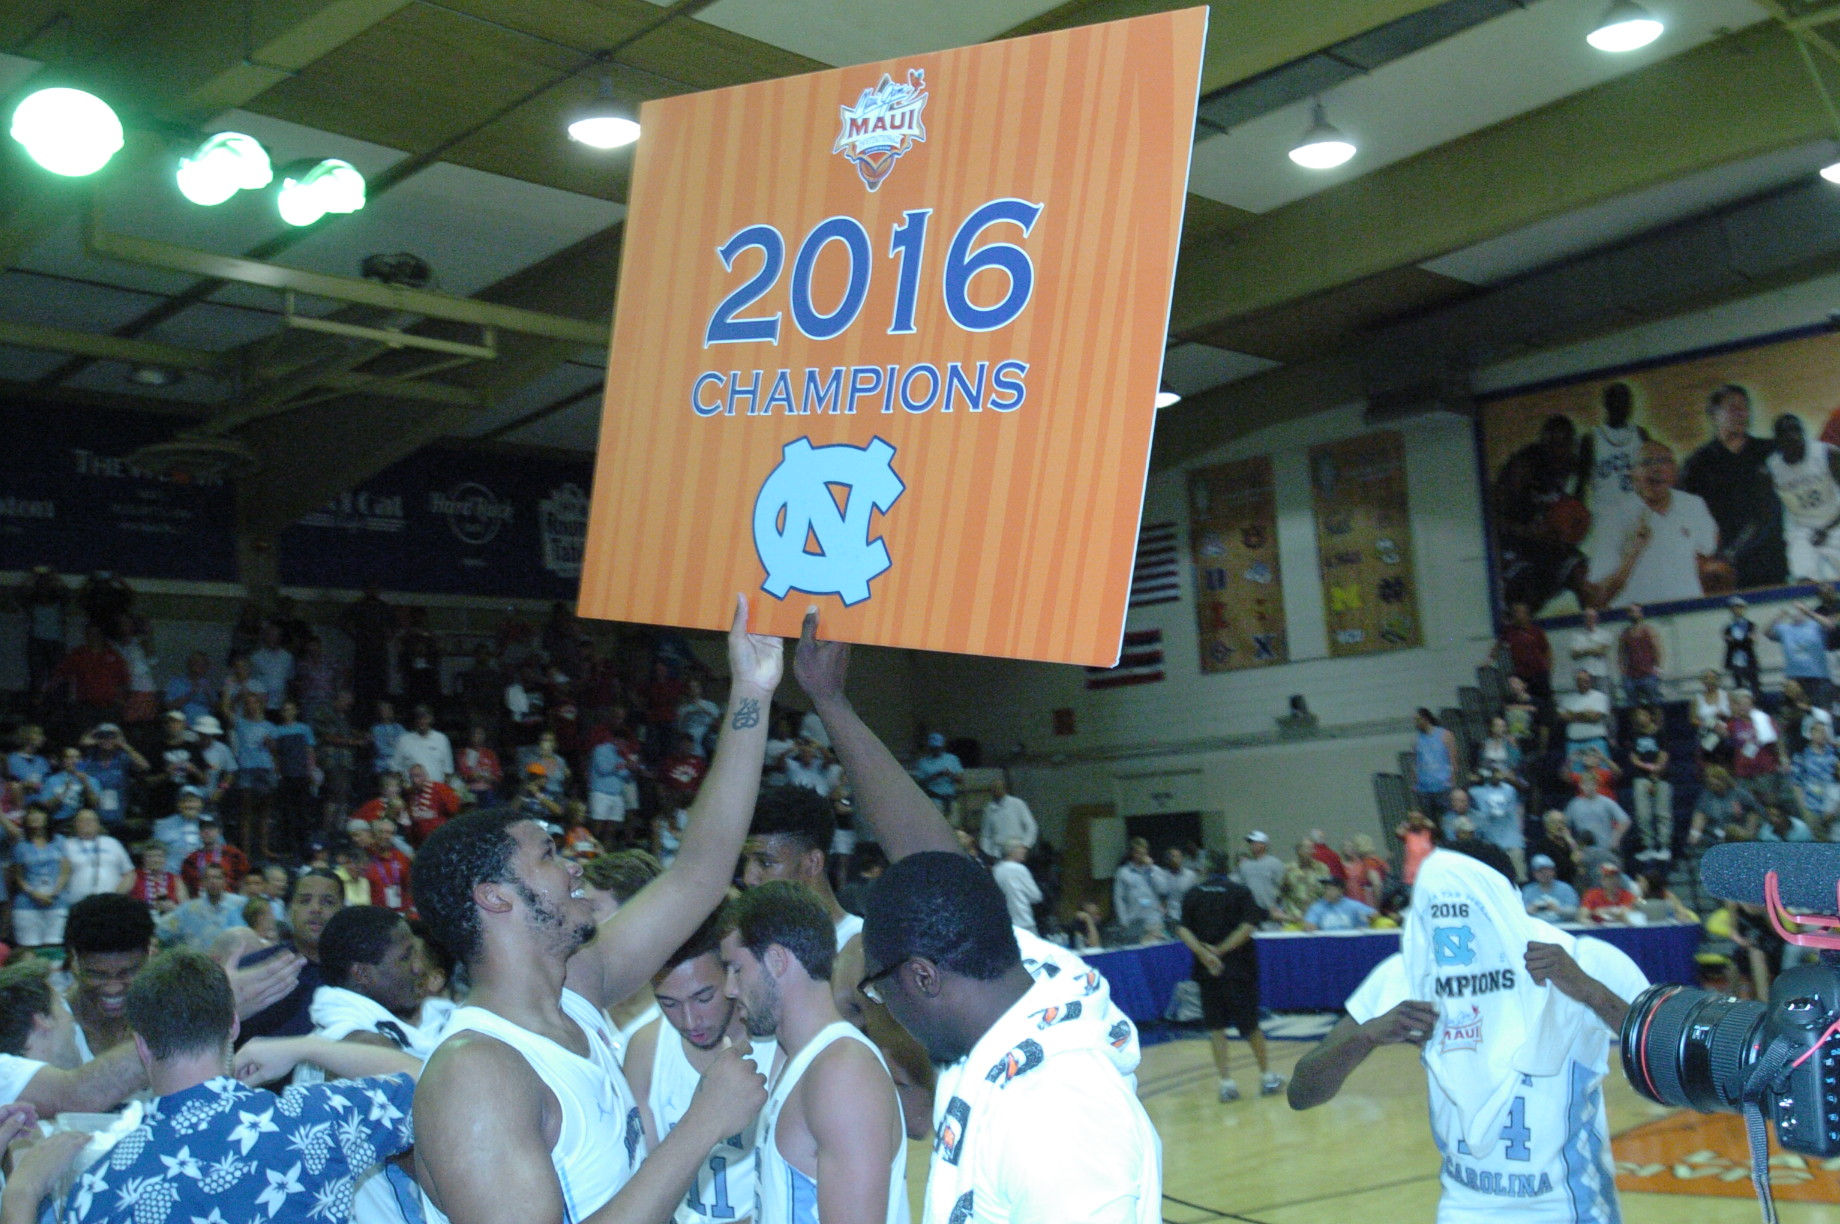 Championship game between UW vs UNC at the 2016 Maui Jim Maui Invitational. PC: Joel B. Tamayo.